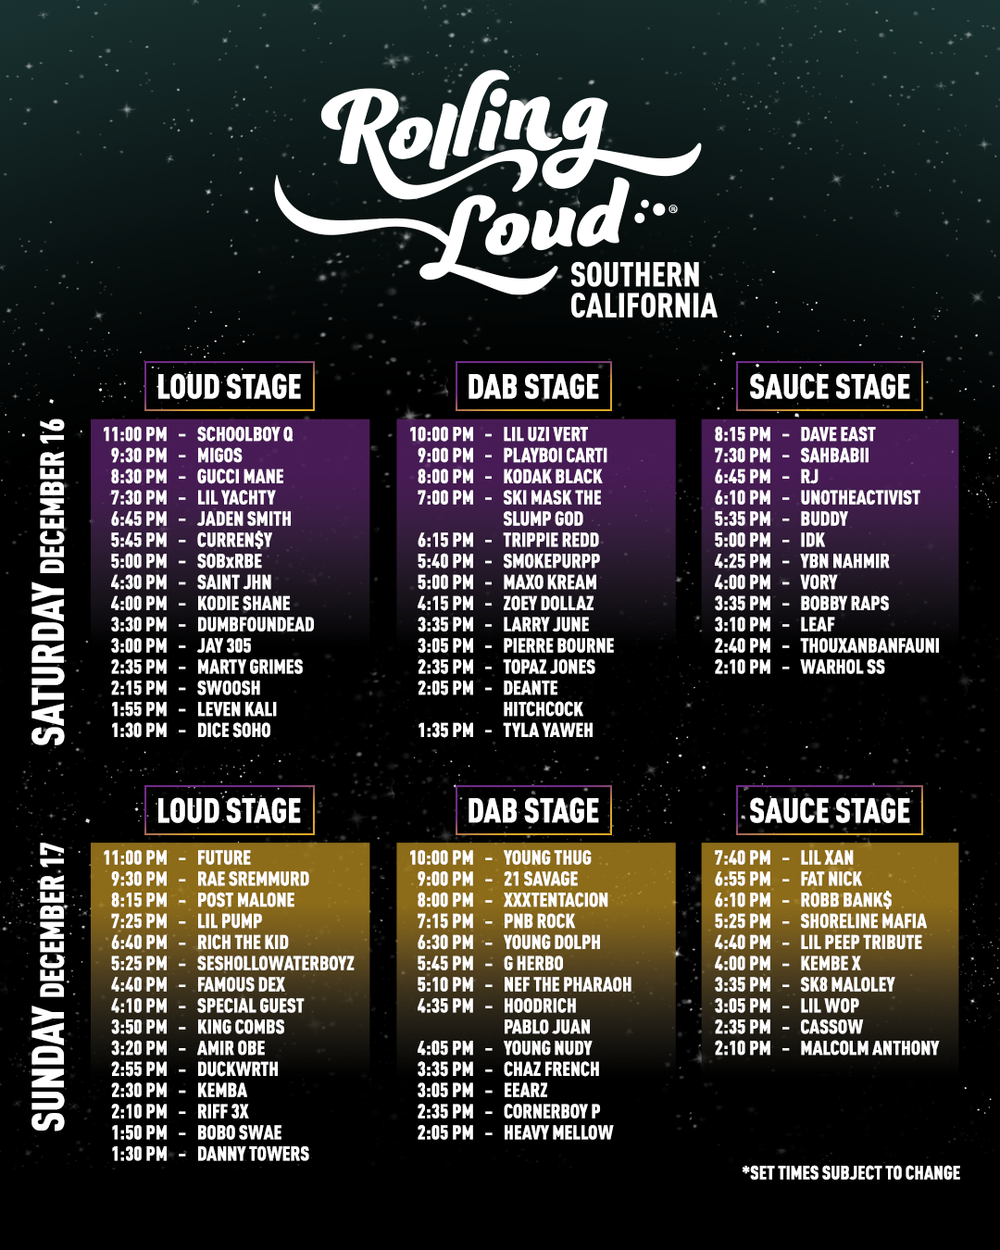 Rolling Loud So Cal 2017 Times.png